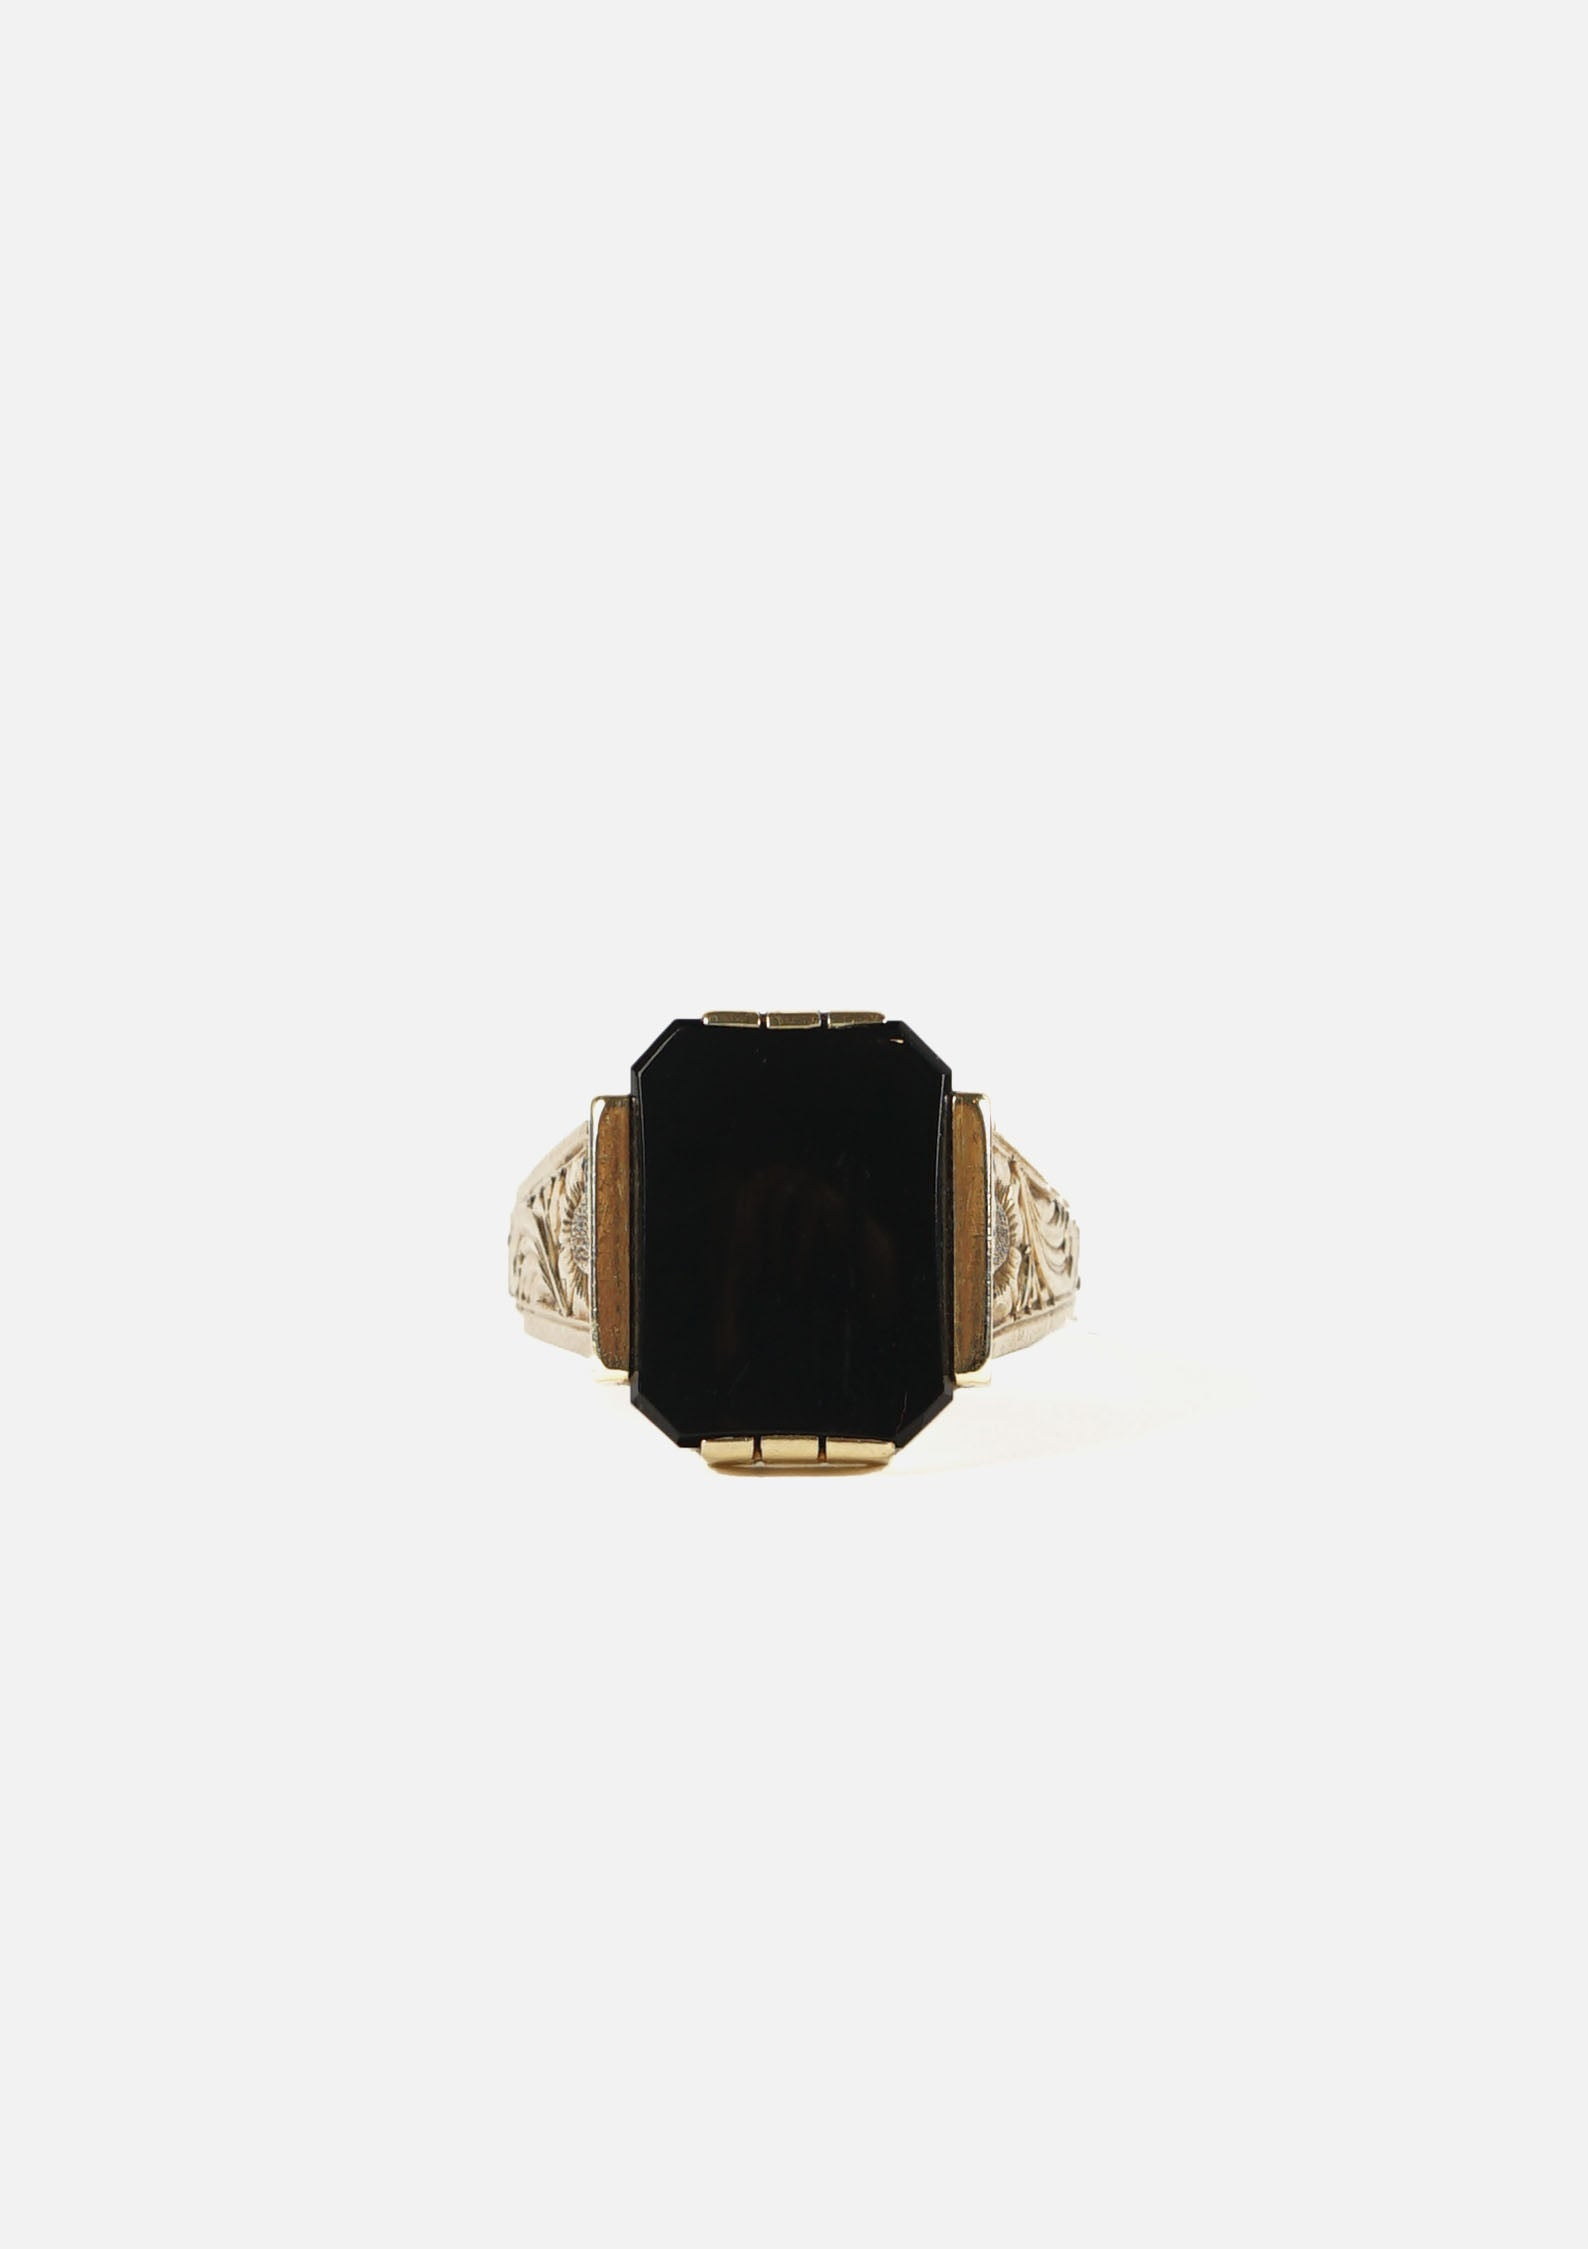 Onyx Gold Ring w / Engraving